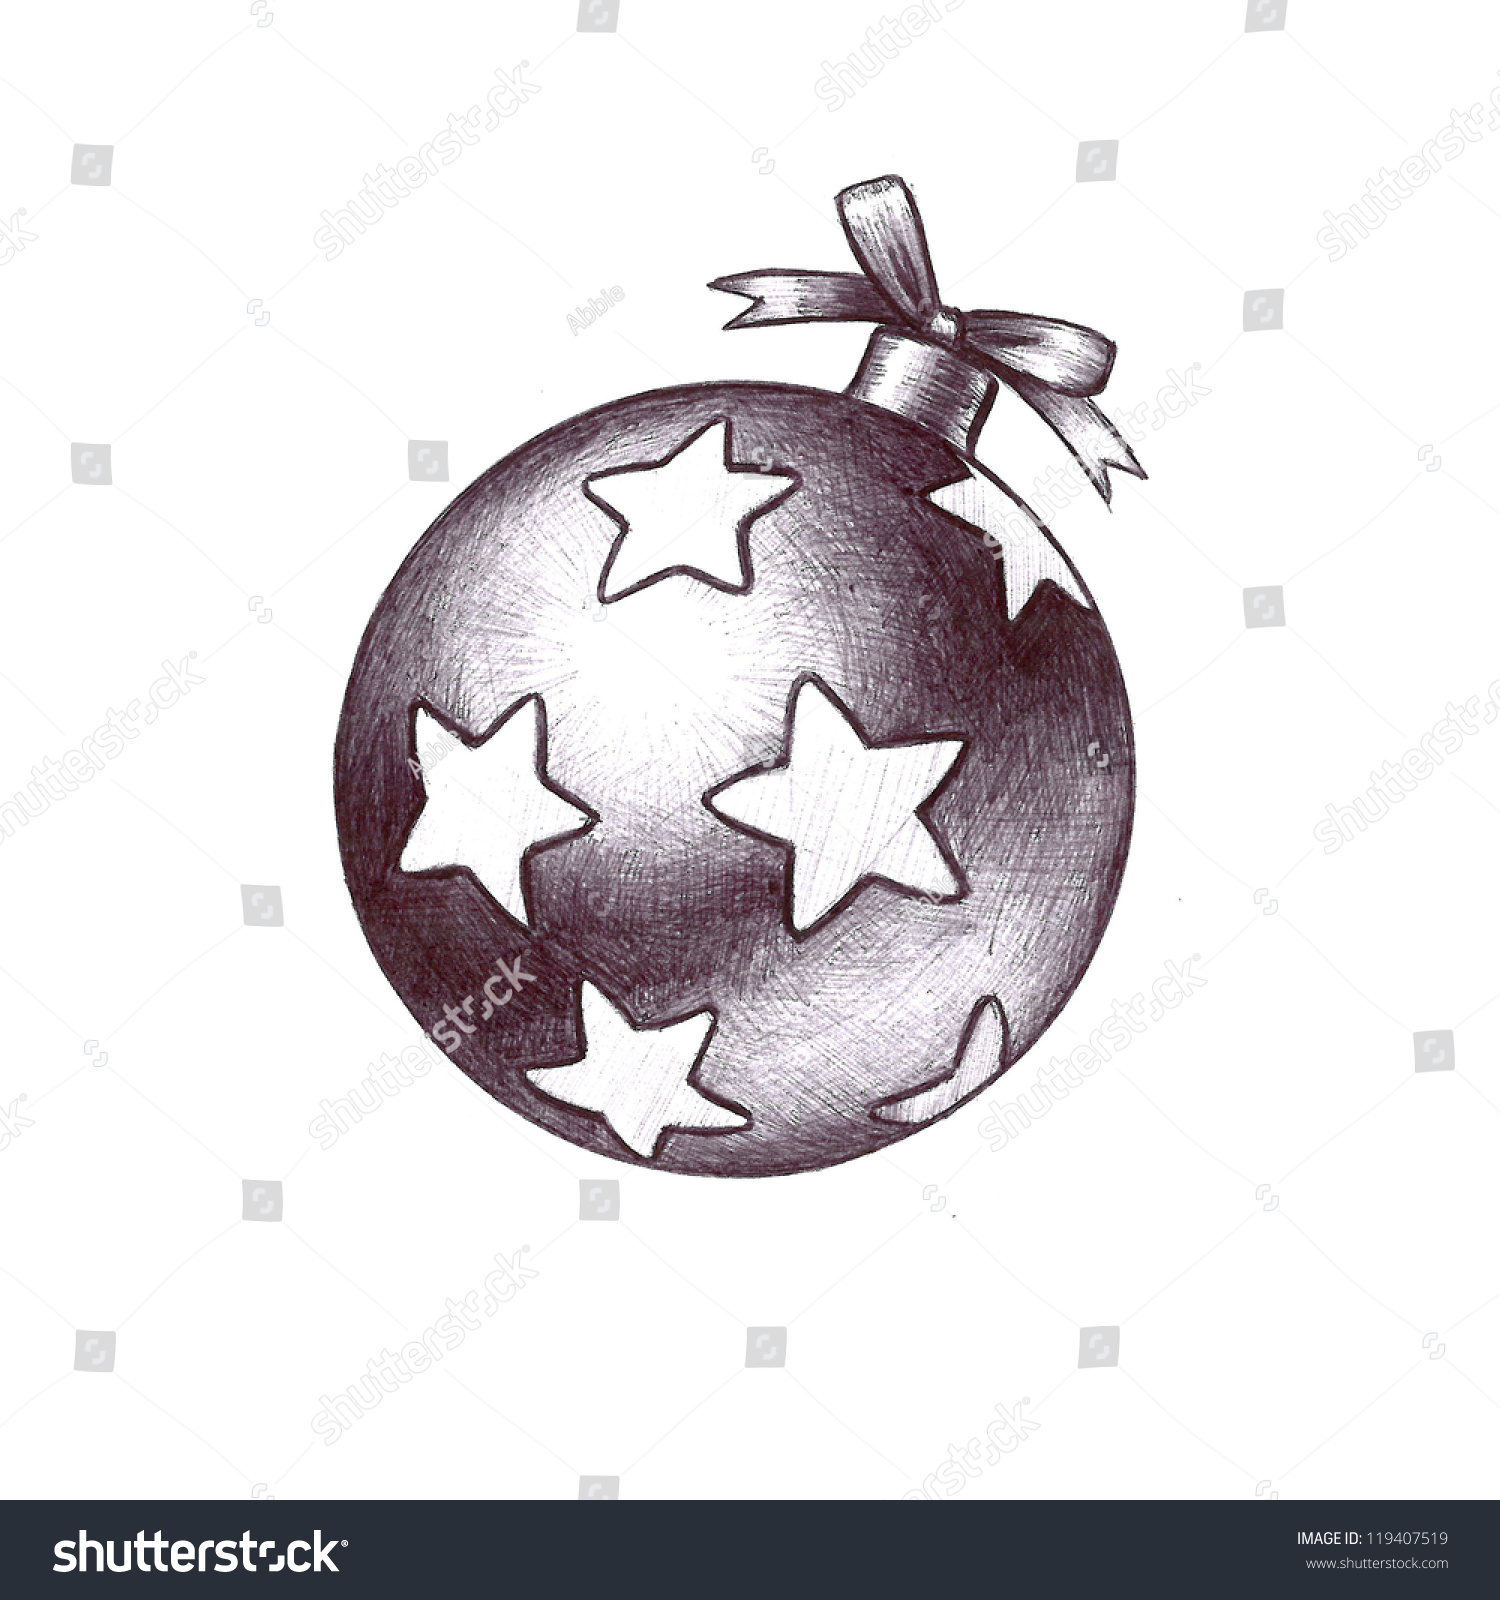 Hand Drawn Sketch Of Christmas Clip Art Beautiful Christmas Tree Ornament Ball With Stars And ...